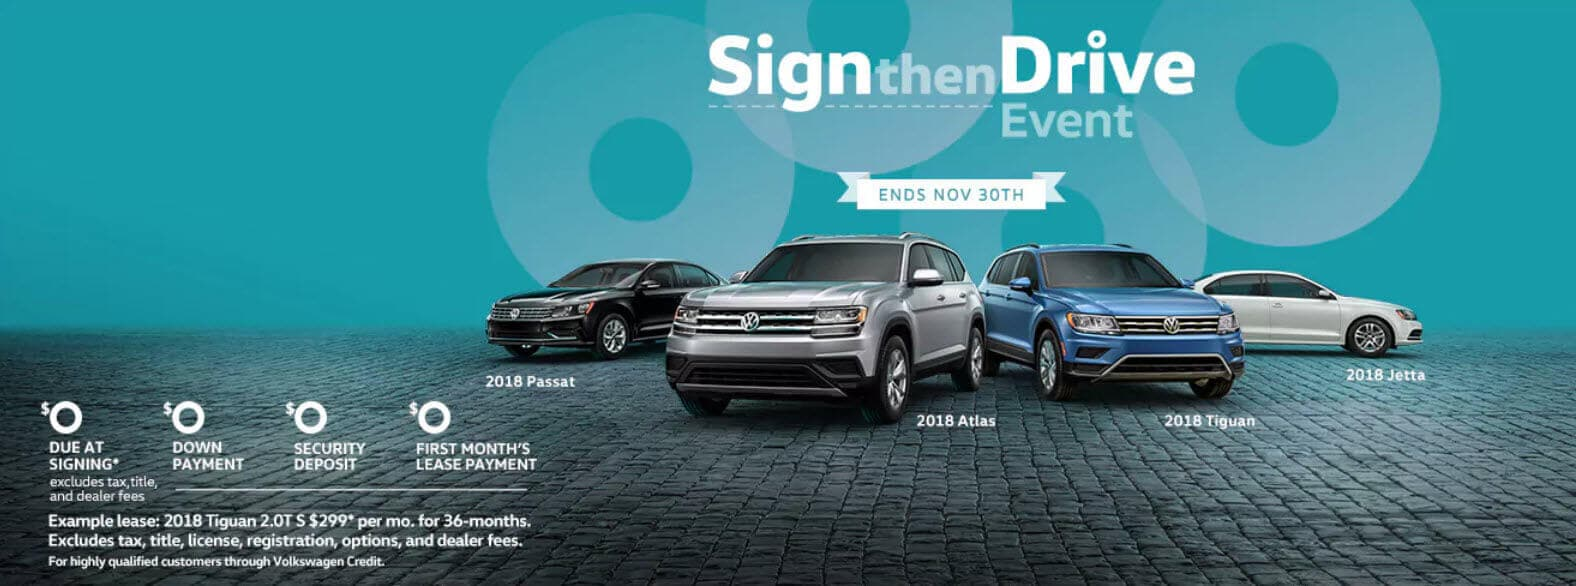 volkswagen sign then drive event at fred beans volkswagen